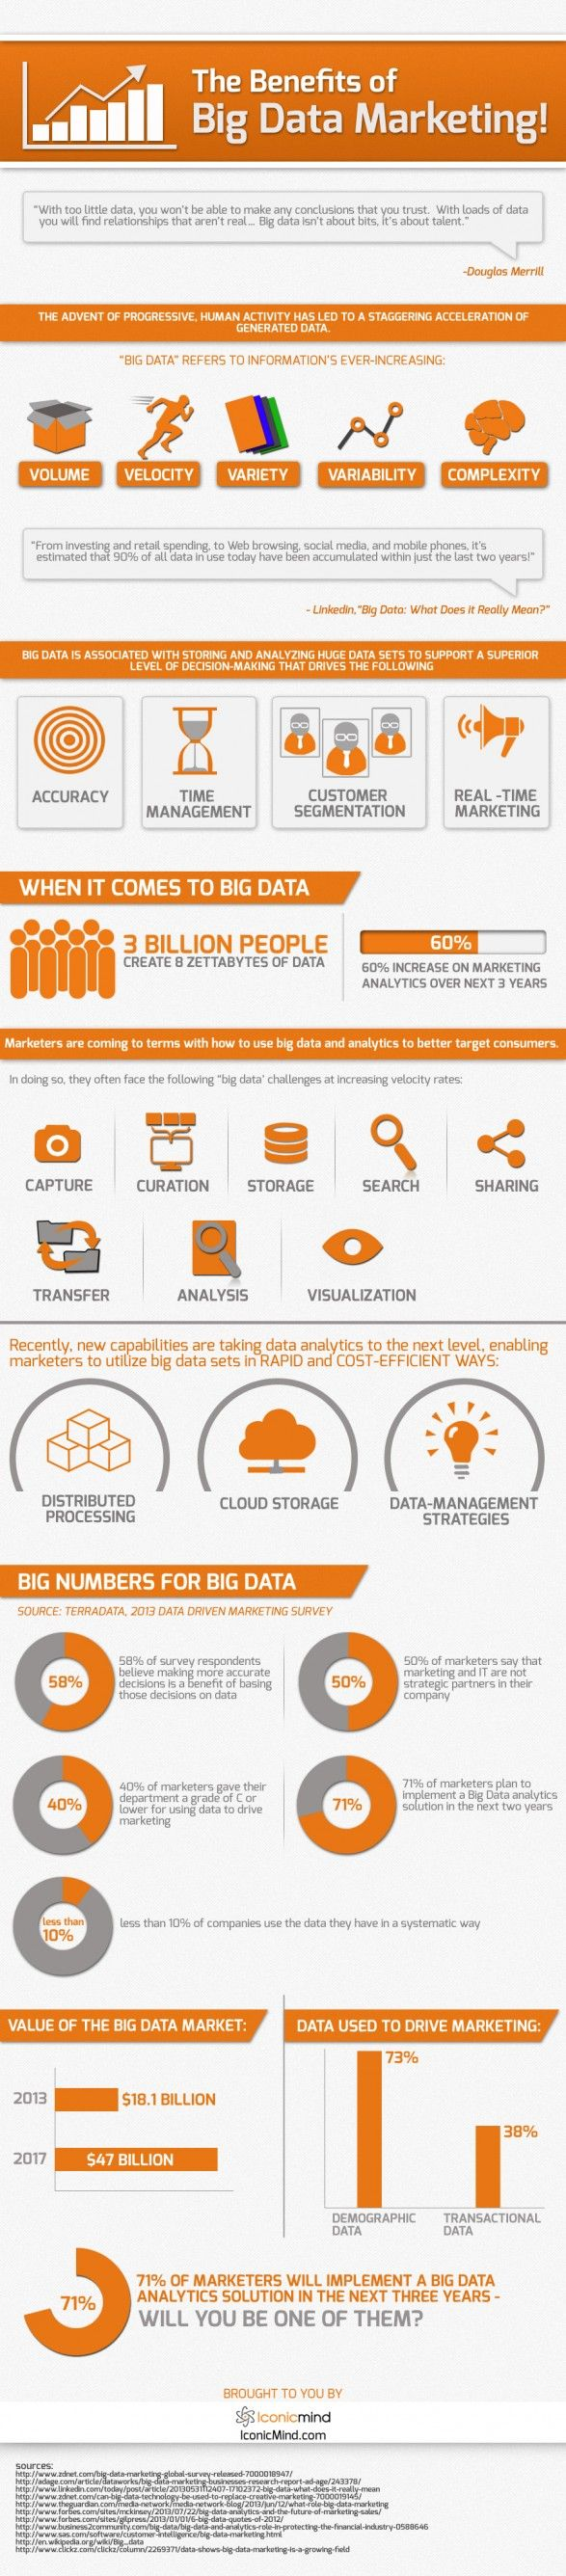 The Benefits of Big Data Marketing (Infographic)